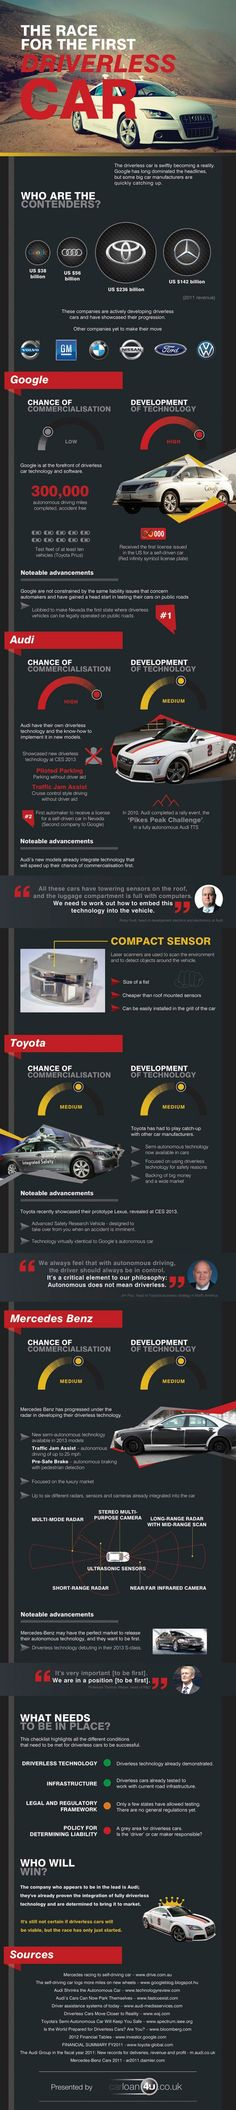 The Race for the First Driverless Car [Infographic]